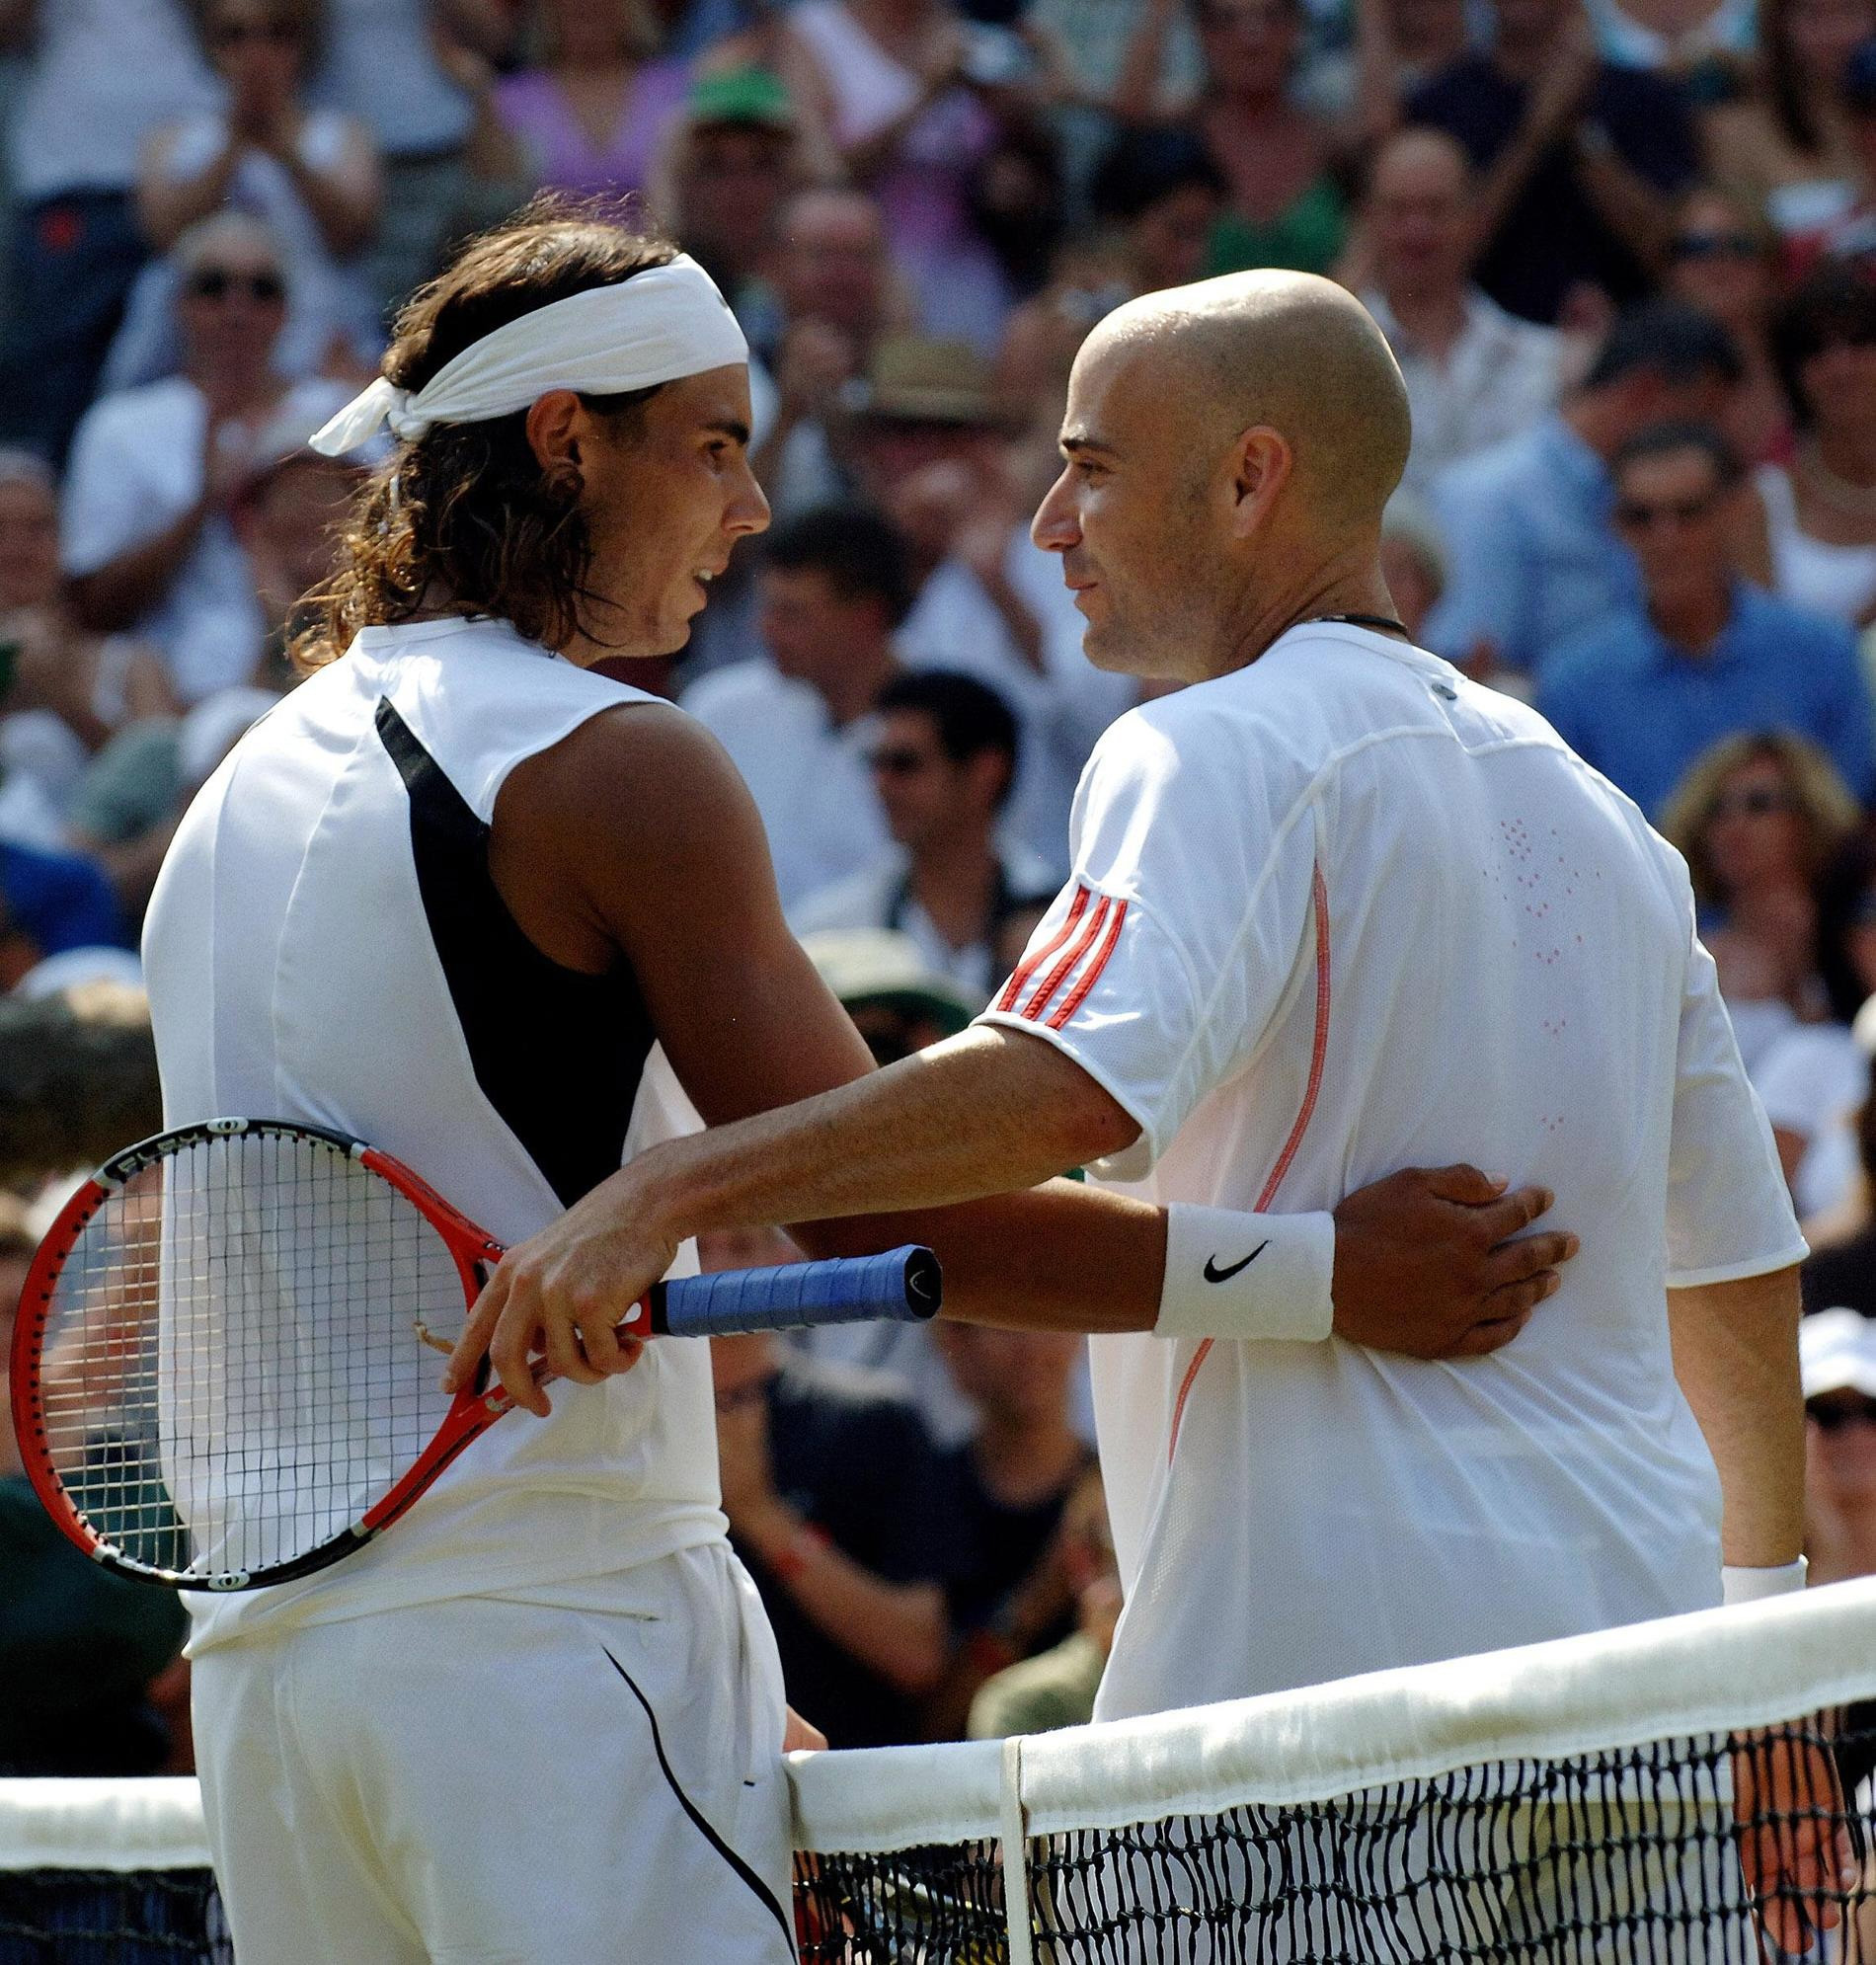 Spain's Rafael Nadal consoles Agassi after a defeat at Wimbledon in 2006. (Fiona Hanson/PA)